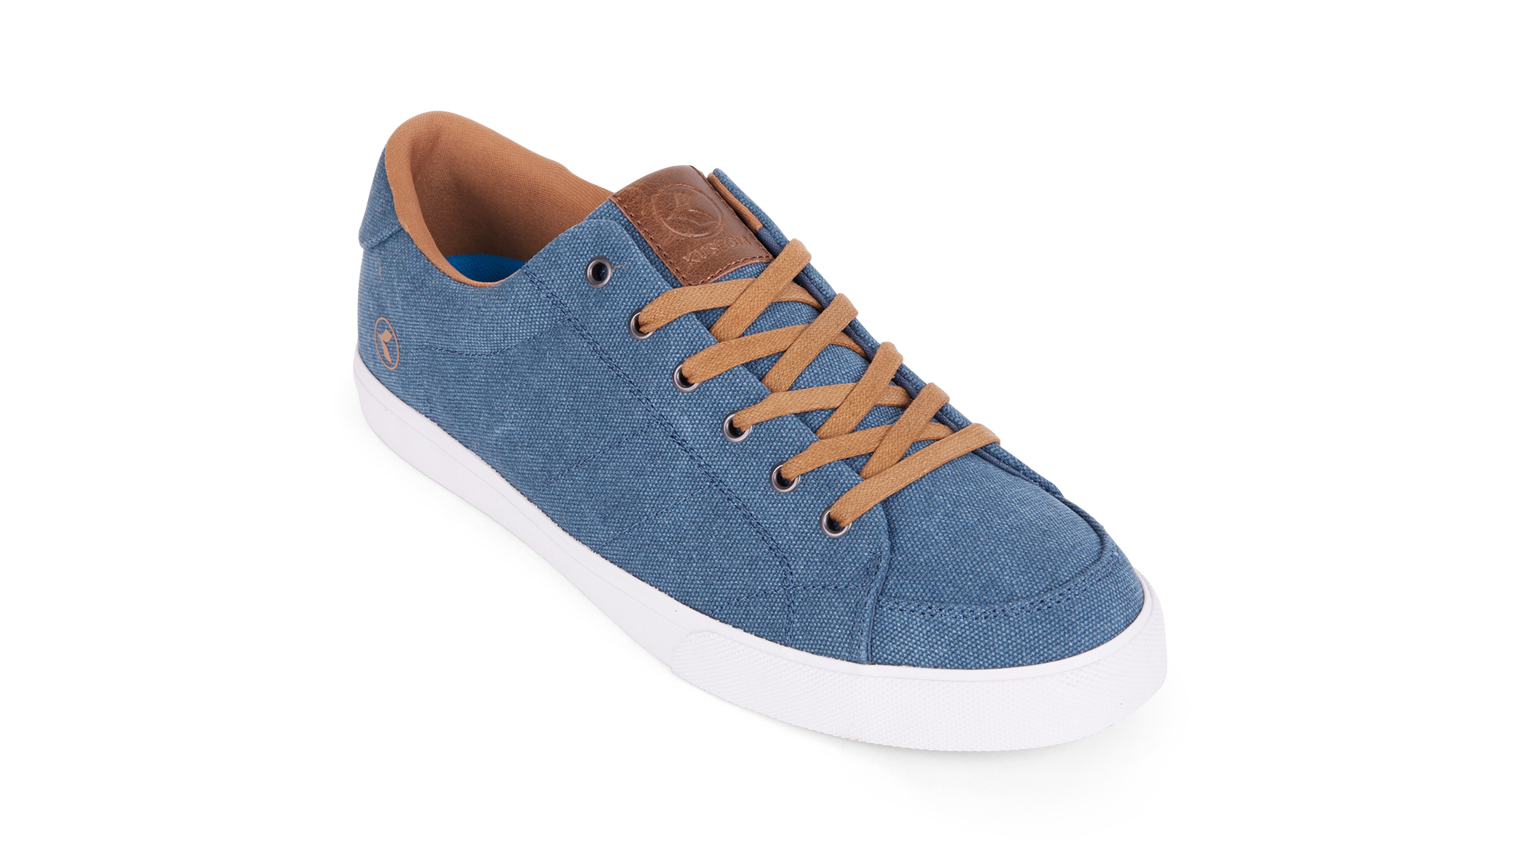 KUSTOM SHOES KRAMER SHOE / BLUE WASH